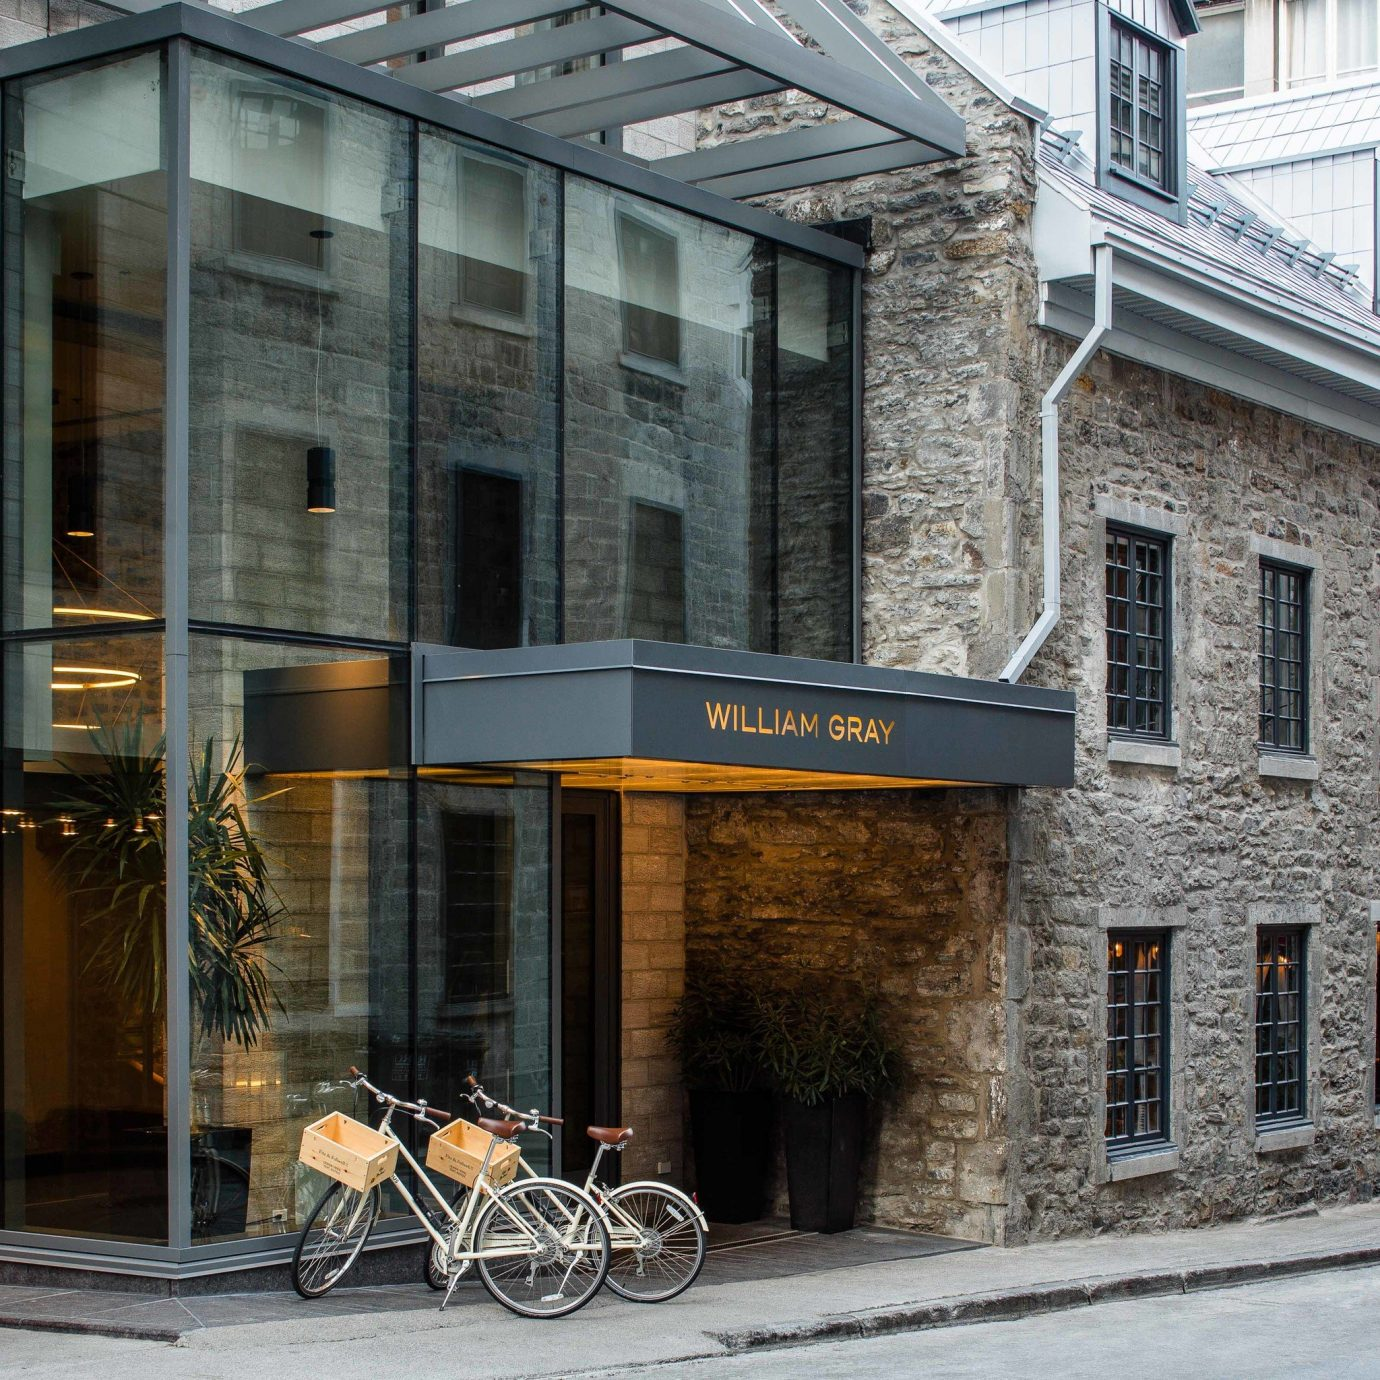 Canada Hotels Montreal Trip Ideas building Architecture City neighbourhood mixed use metropolitan area Downtown street house condominium